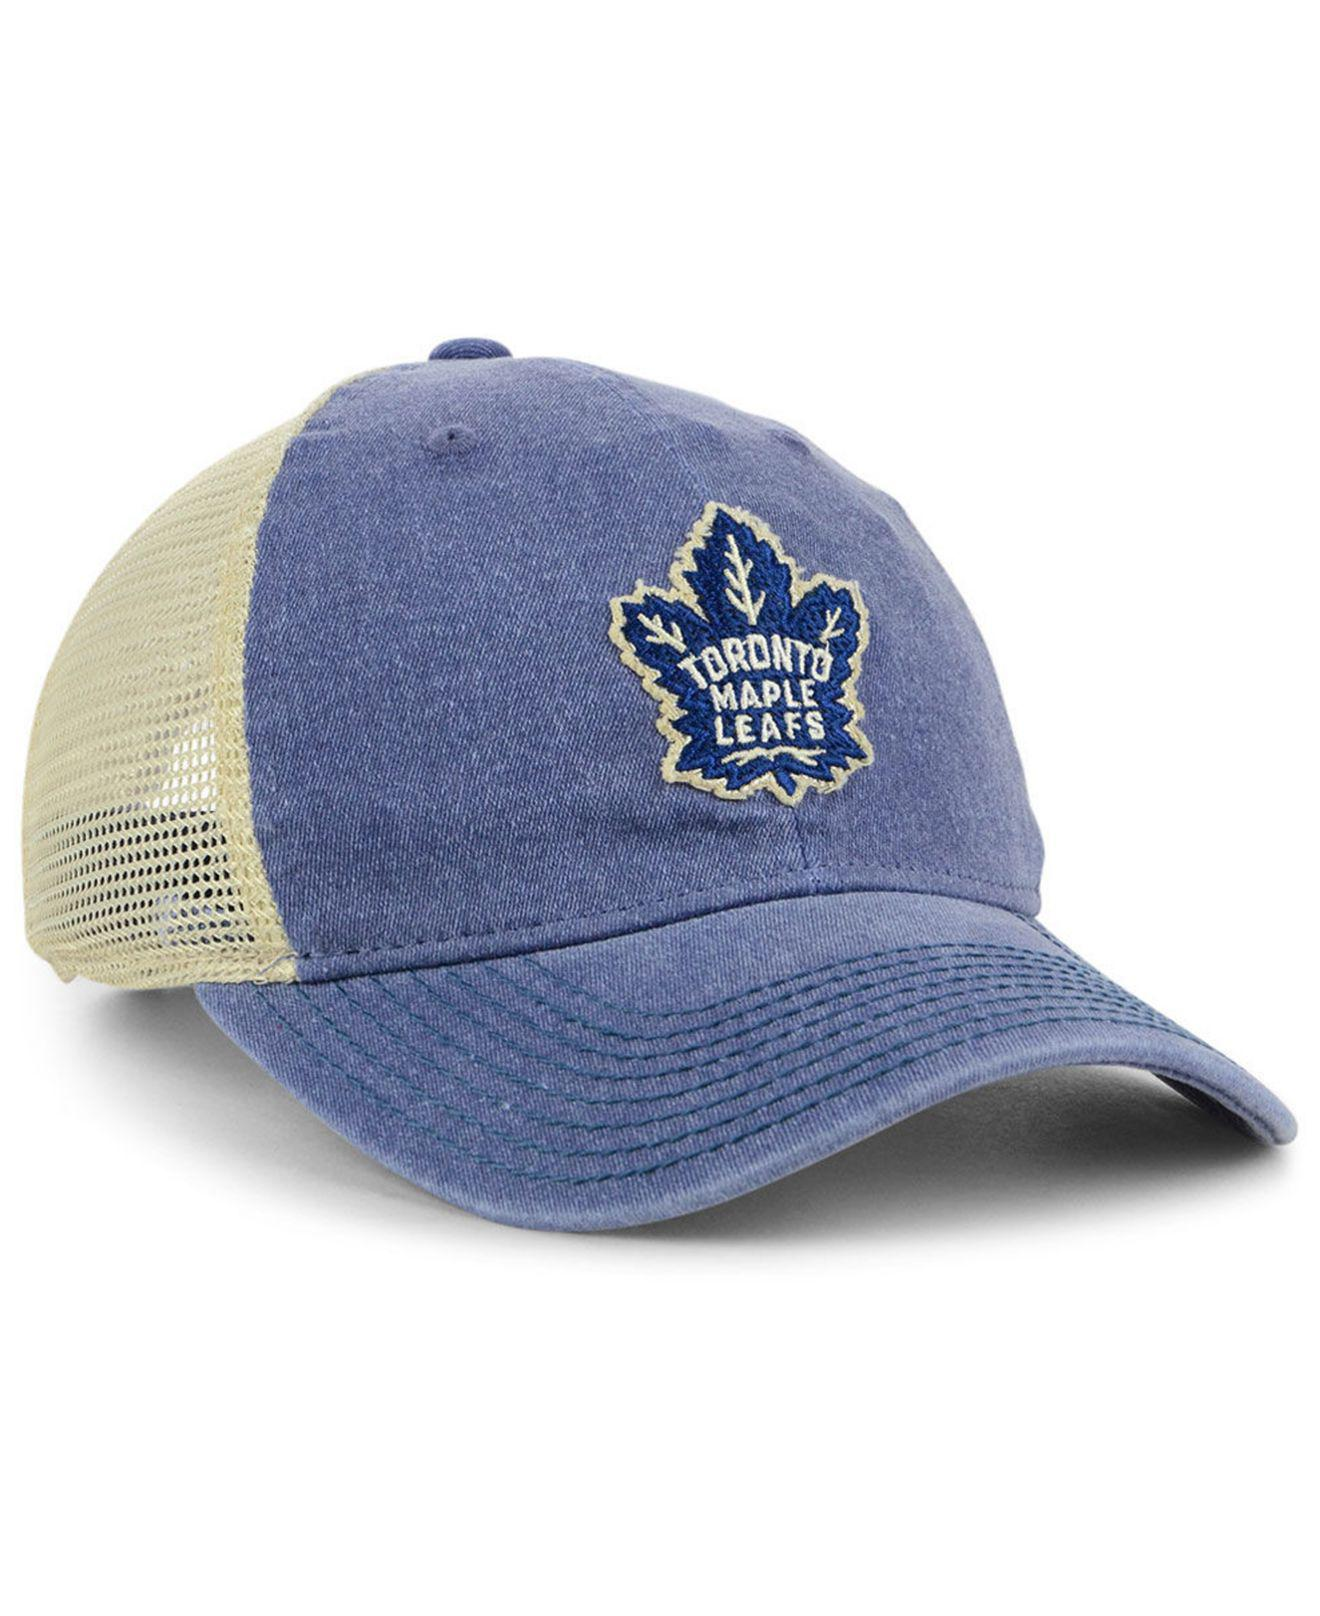 buy online dcd34 fa2c2 ... inexpensive adidas blue toronto maple leafs sun bleached slouch cap for  men lyst. view fullscreen